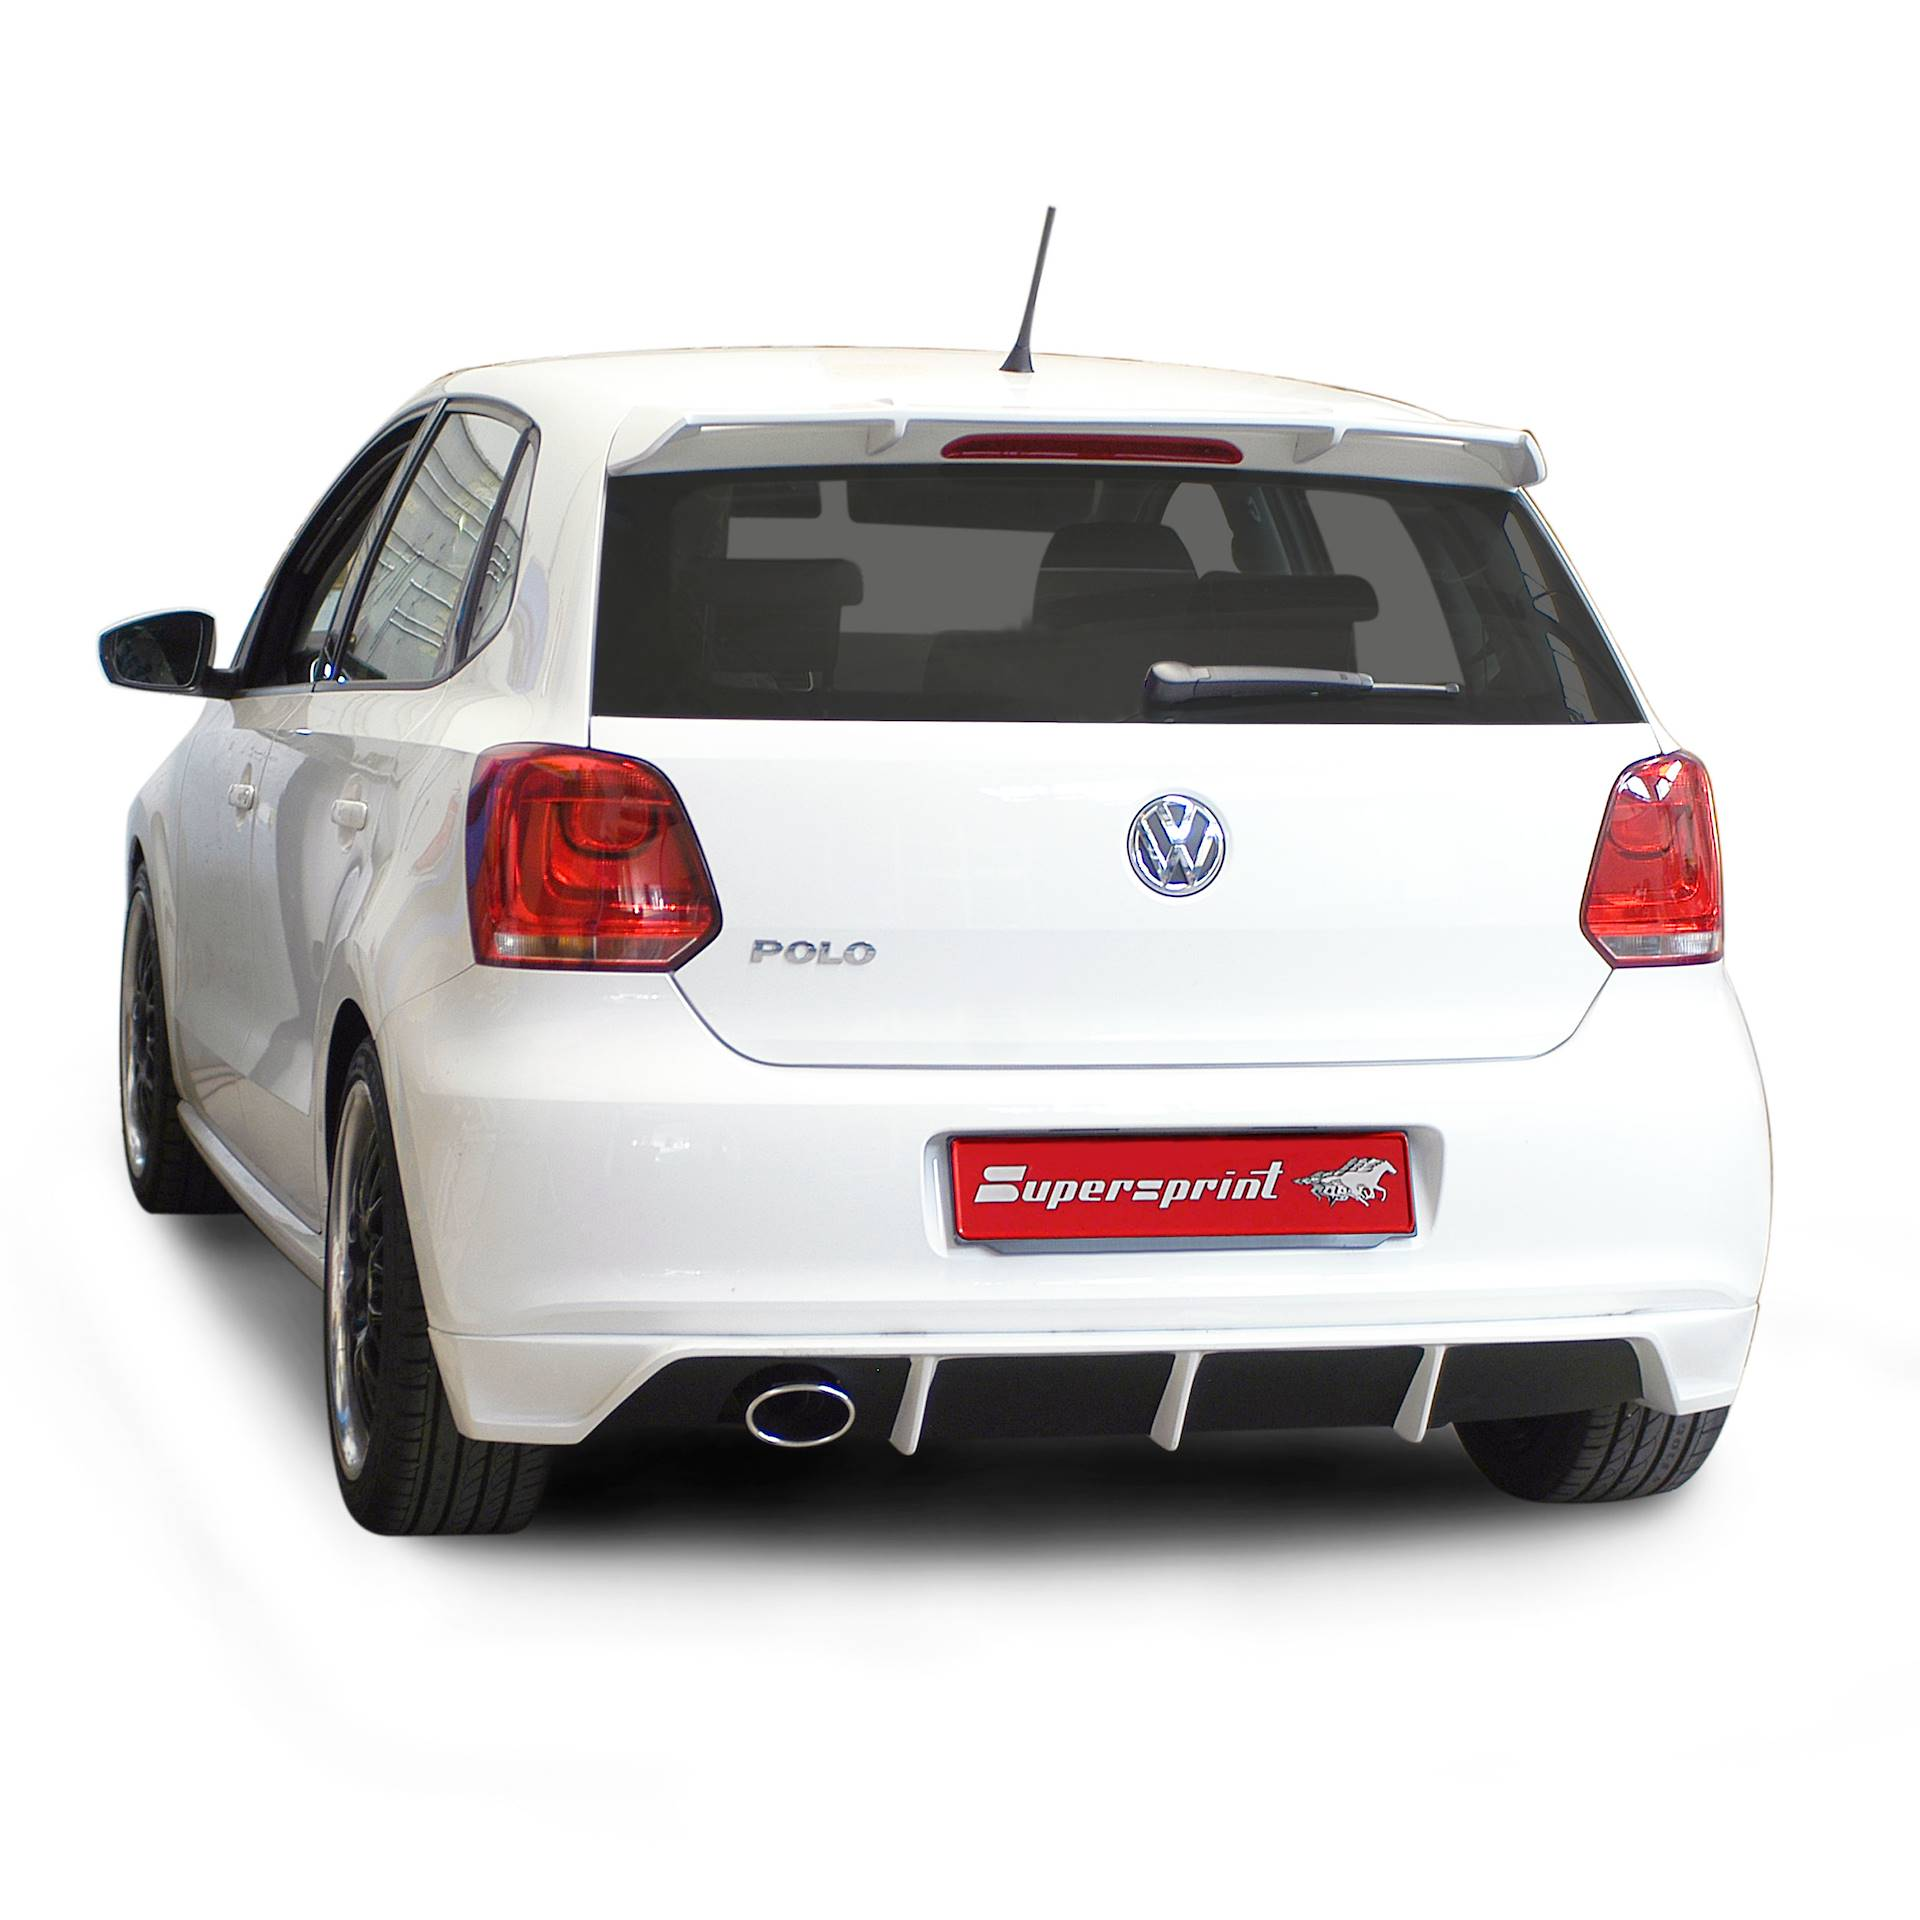 vw polo 6r 3d 5d 60hp 70hp 2009 volkswagen exhaust systems. Black Bedroom Furniture Sets. Home Design Ideas